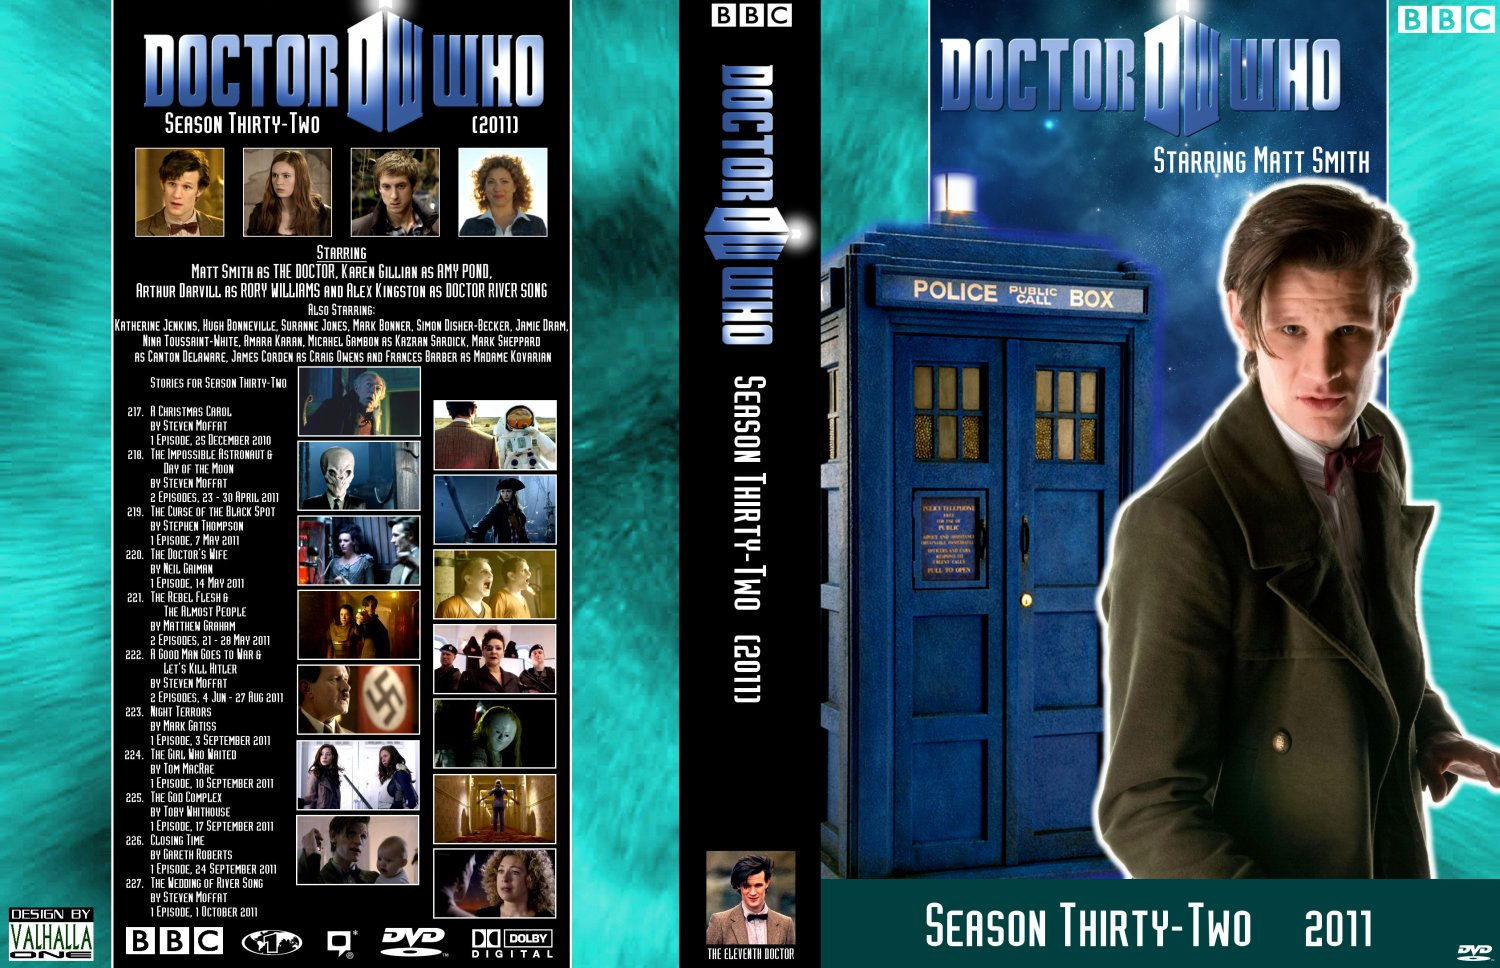 ... !: EXCLUSIVE!!!! Doctor Who Series 6 soundtrack CD Cover [Fanmade